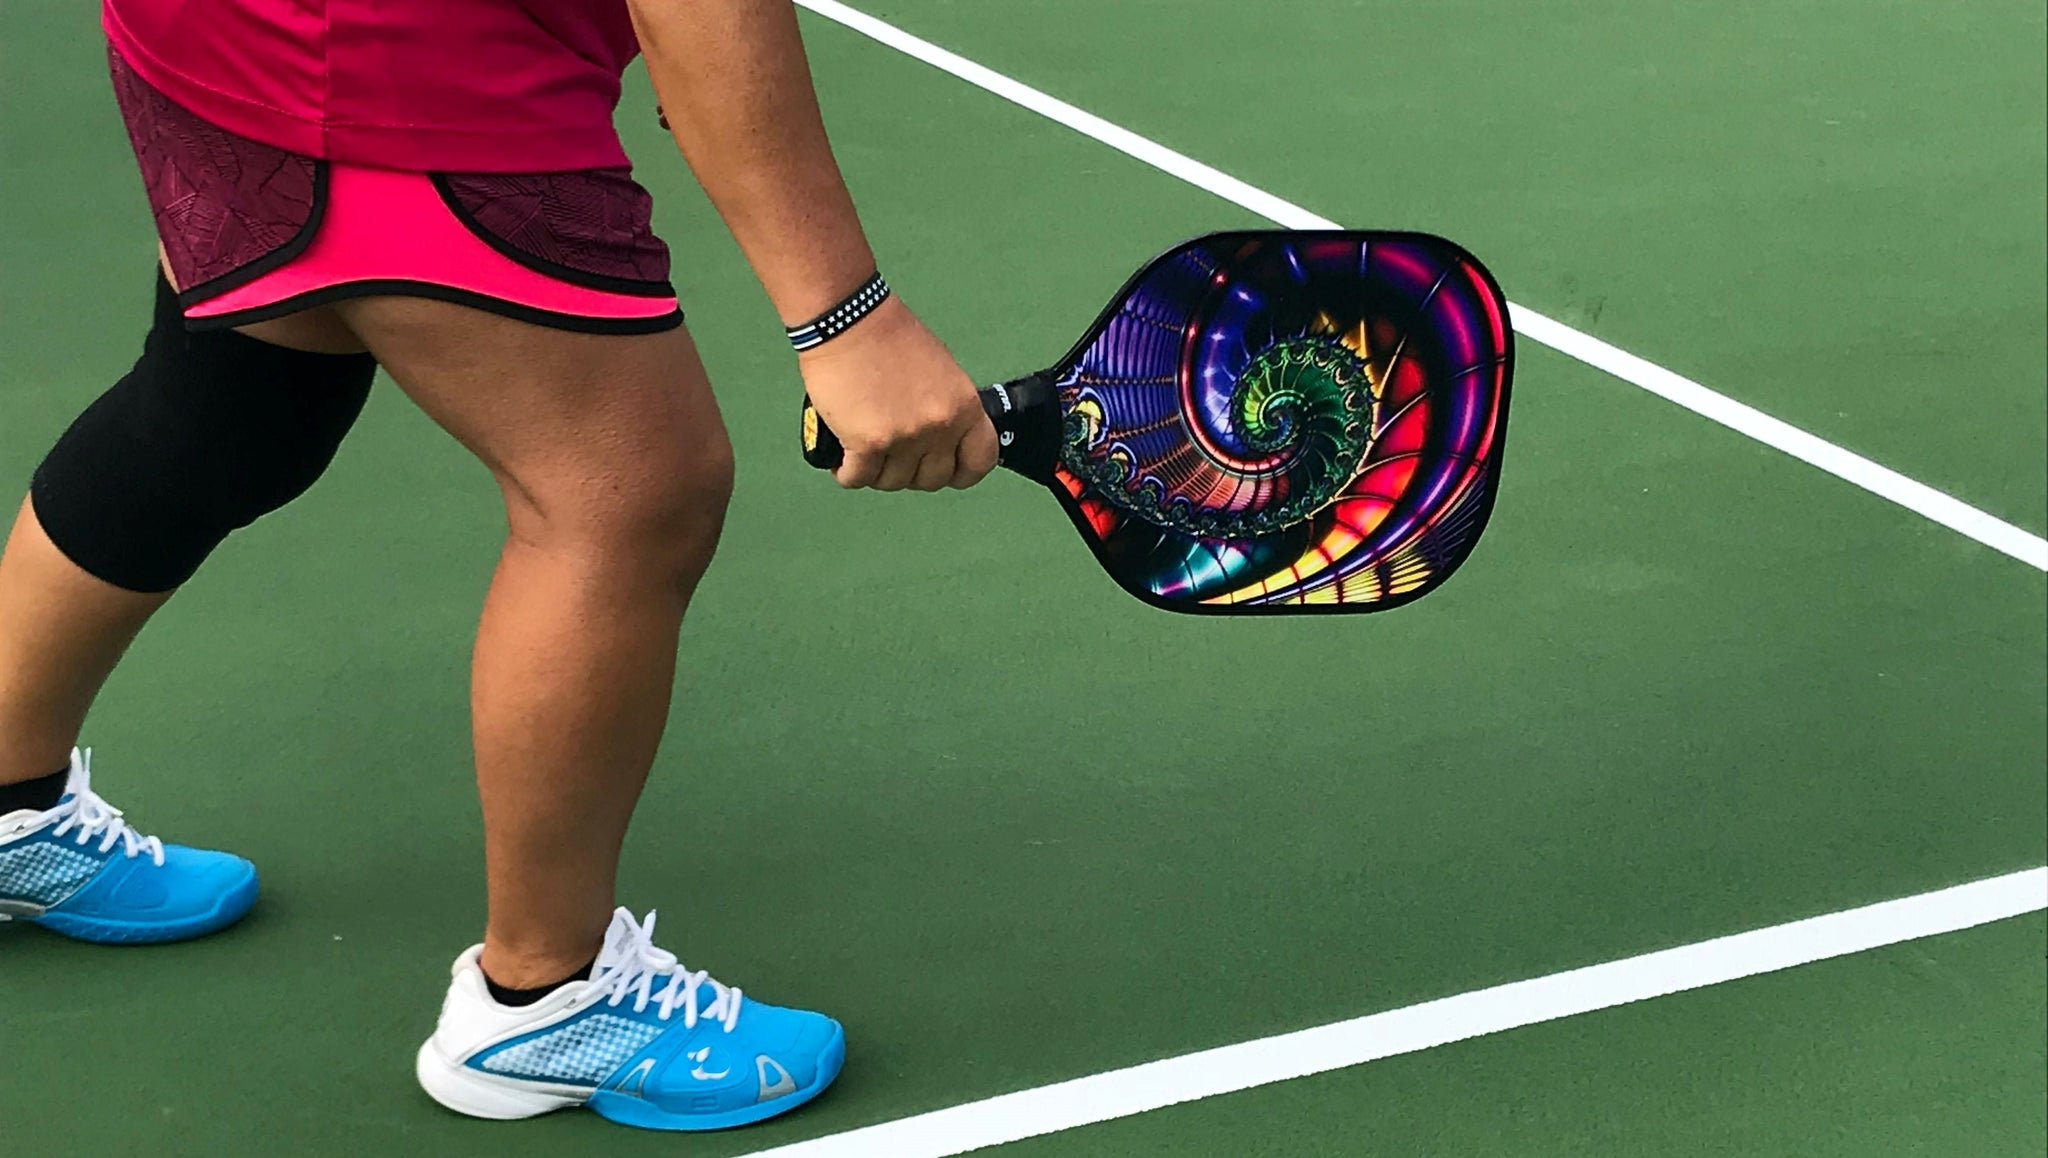 Pickleball racket: player with pickleball racket in hand